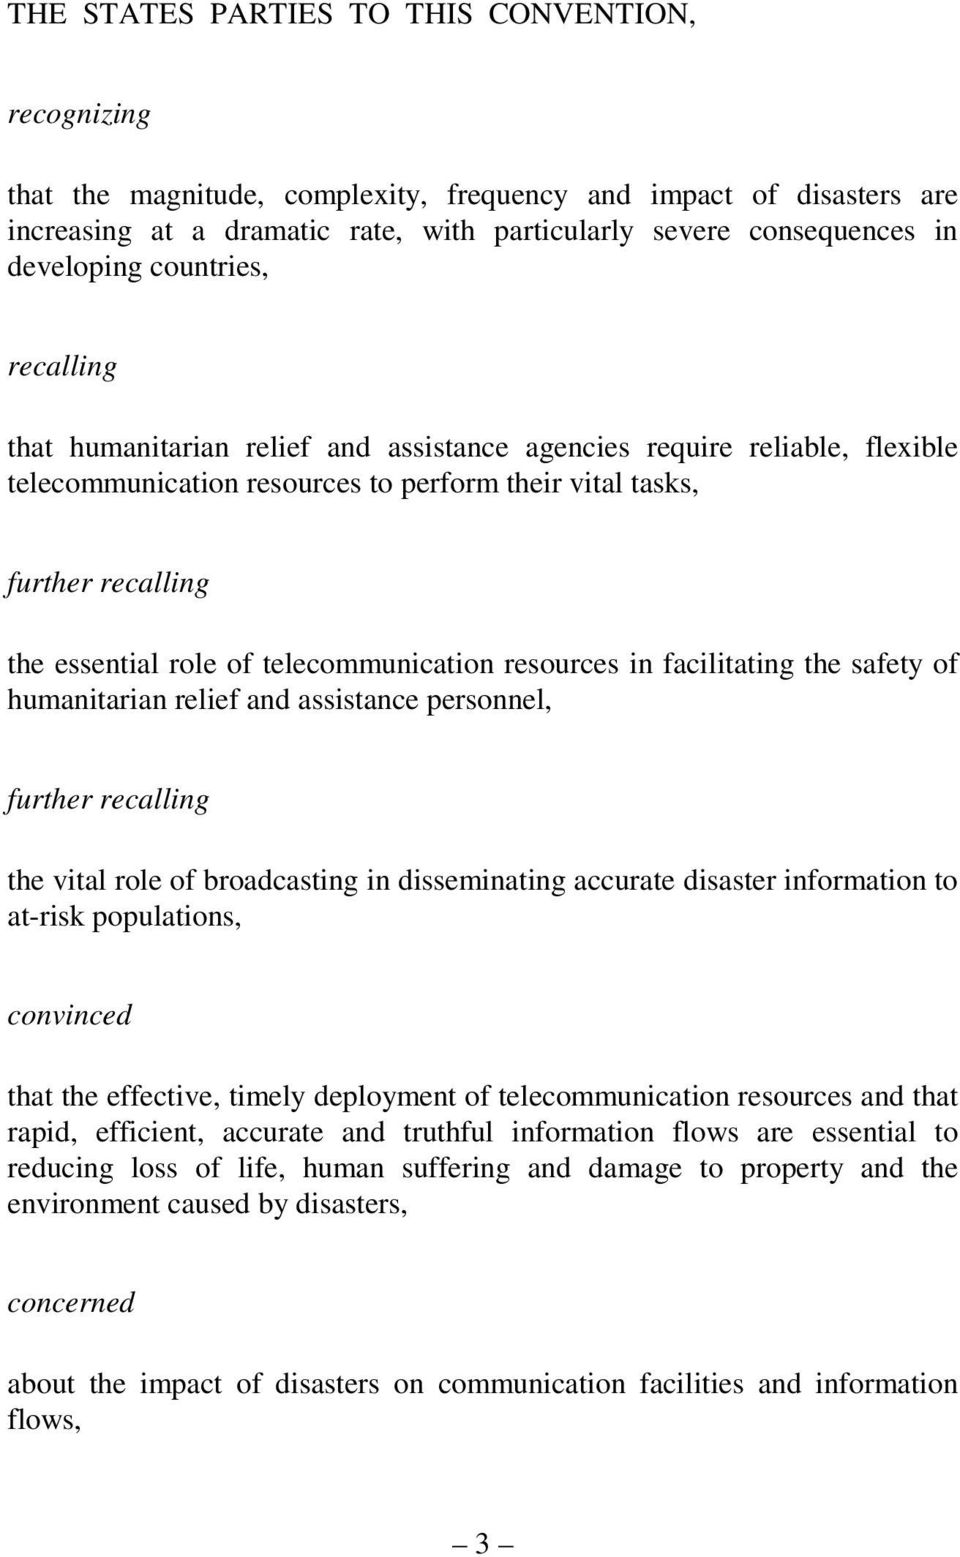 role of telecommunication resources in facilitating the safety of humanitarian relief and assistance personnel, further recalling the vital role of broadcasting in disseminating accurate disaster